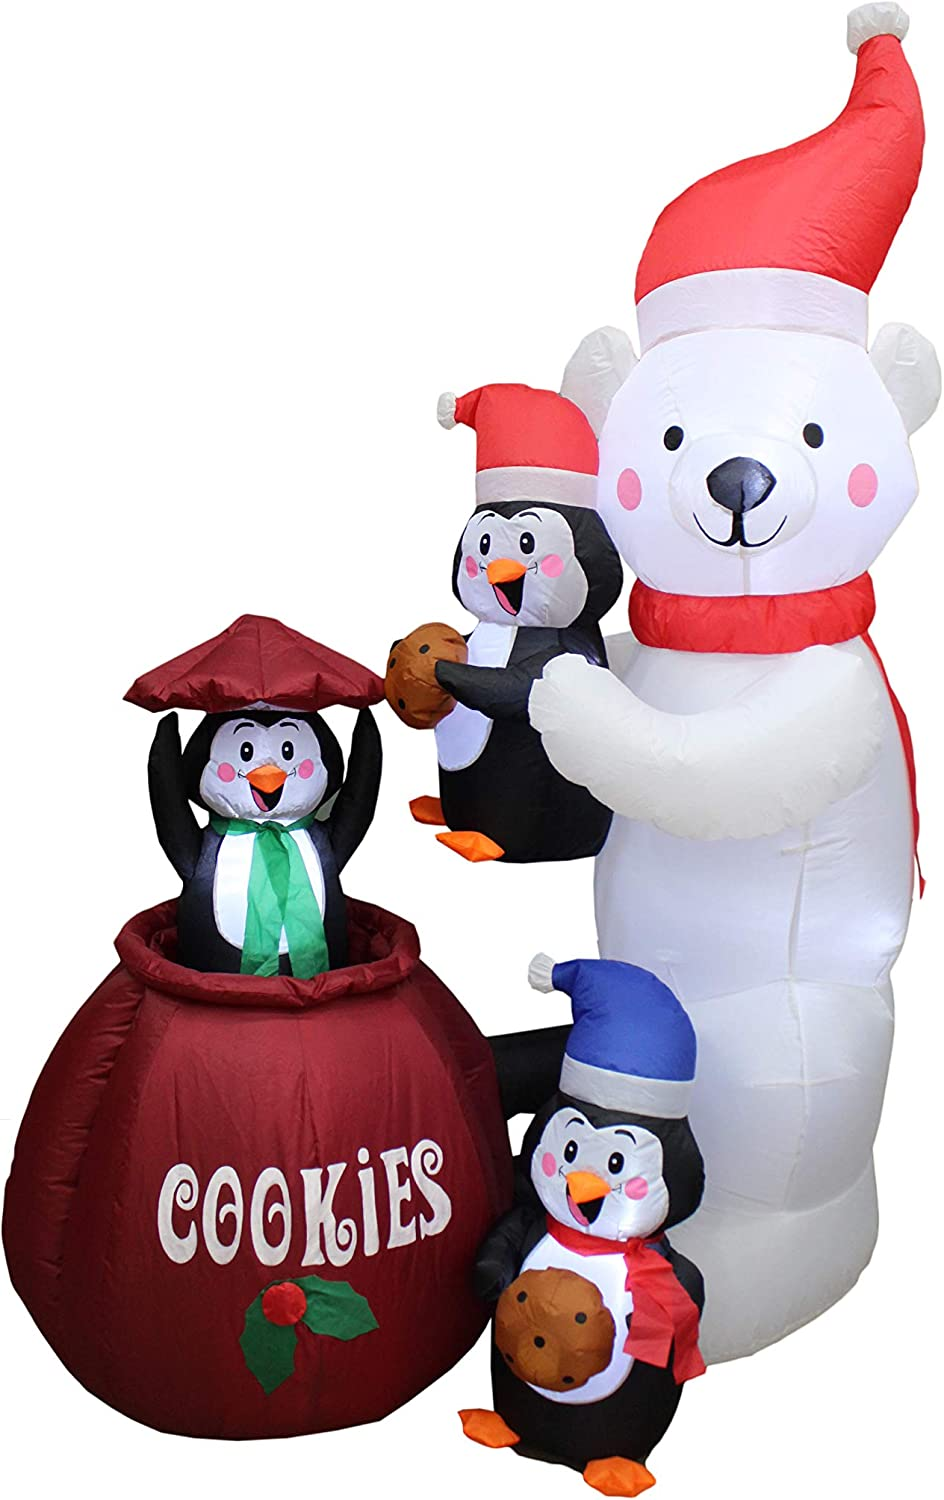 Animated 6 Foot Tall Christmas Max 59% OFF Outlet SALE Inflatable Three Polar Bear P and